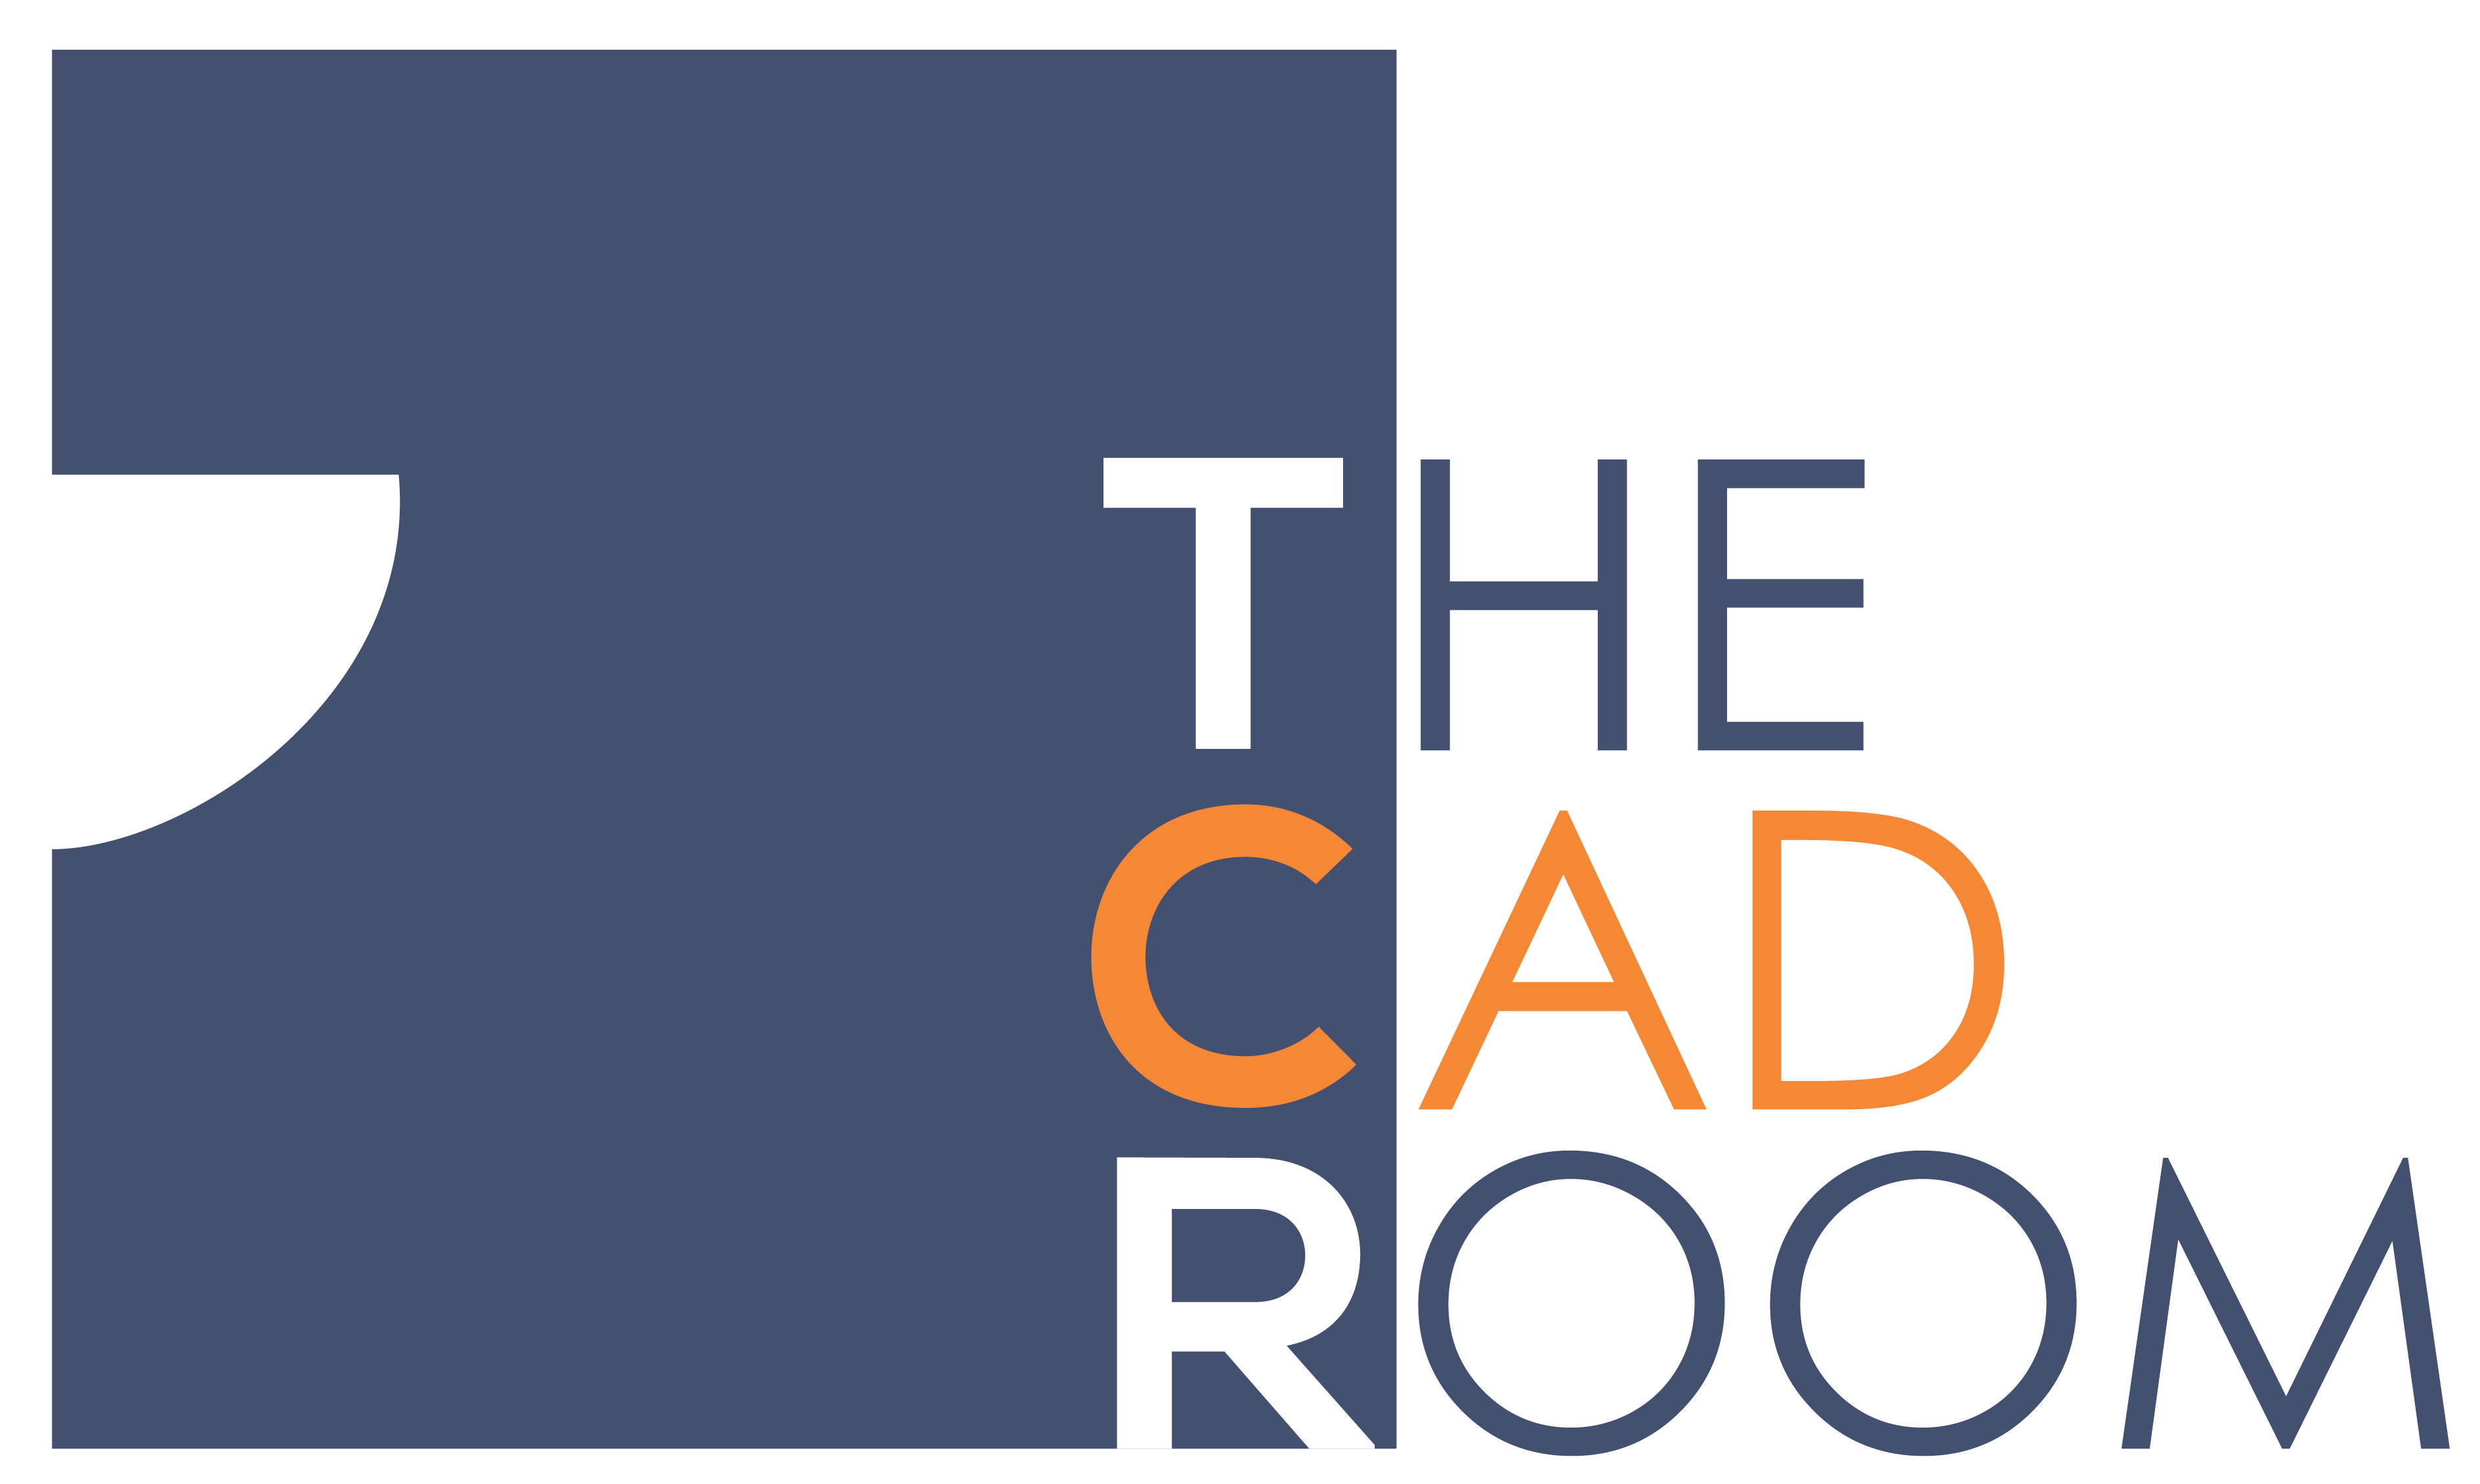 The CAD Room logo